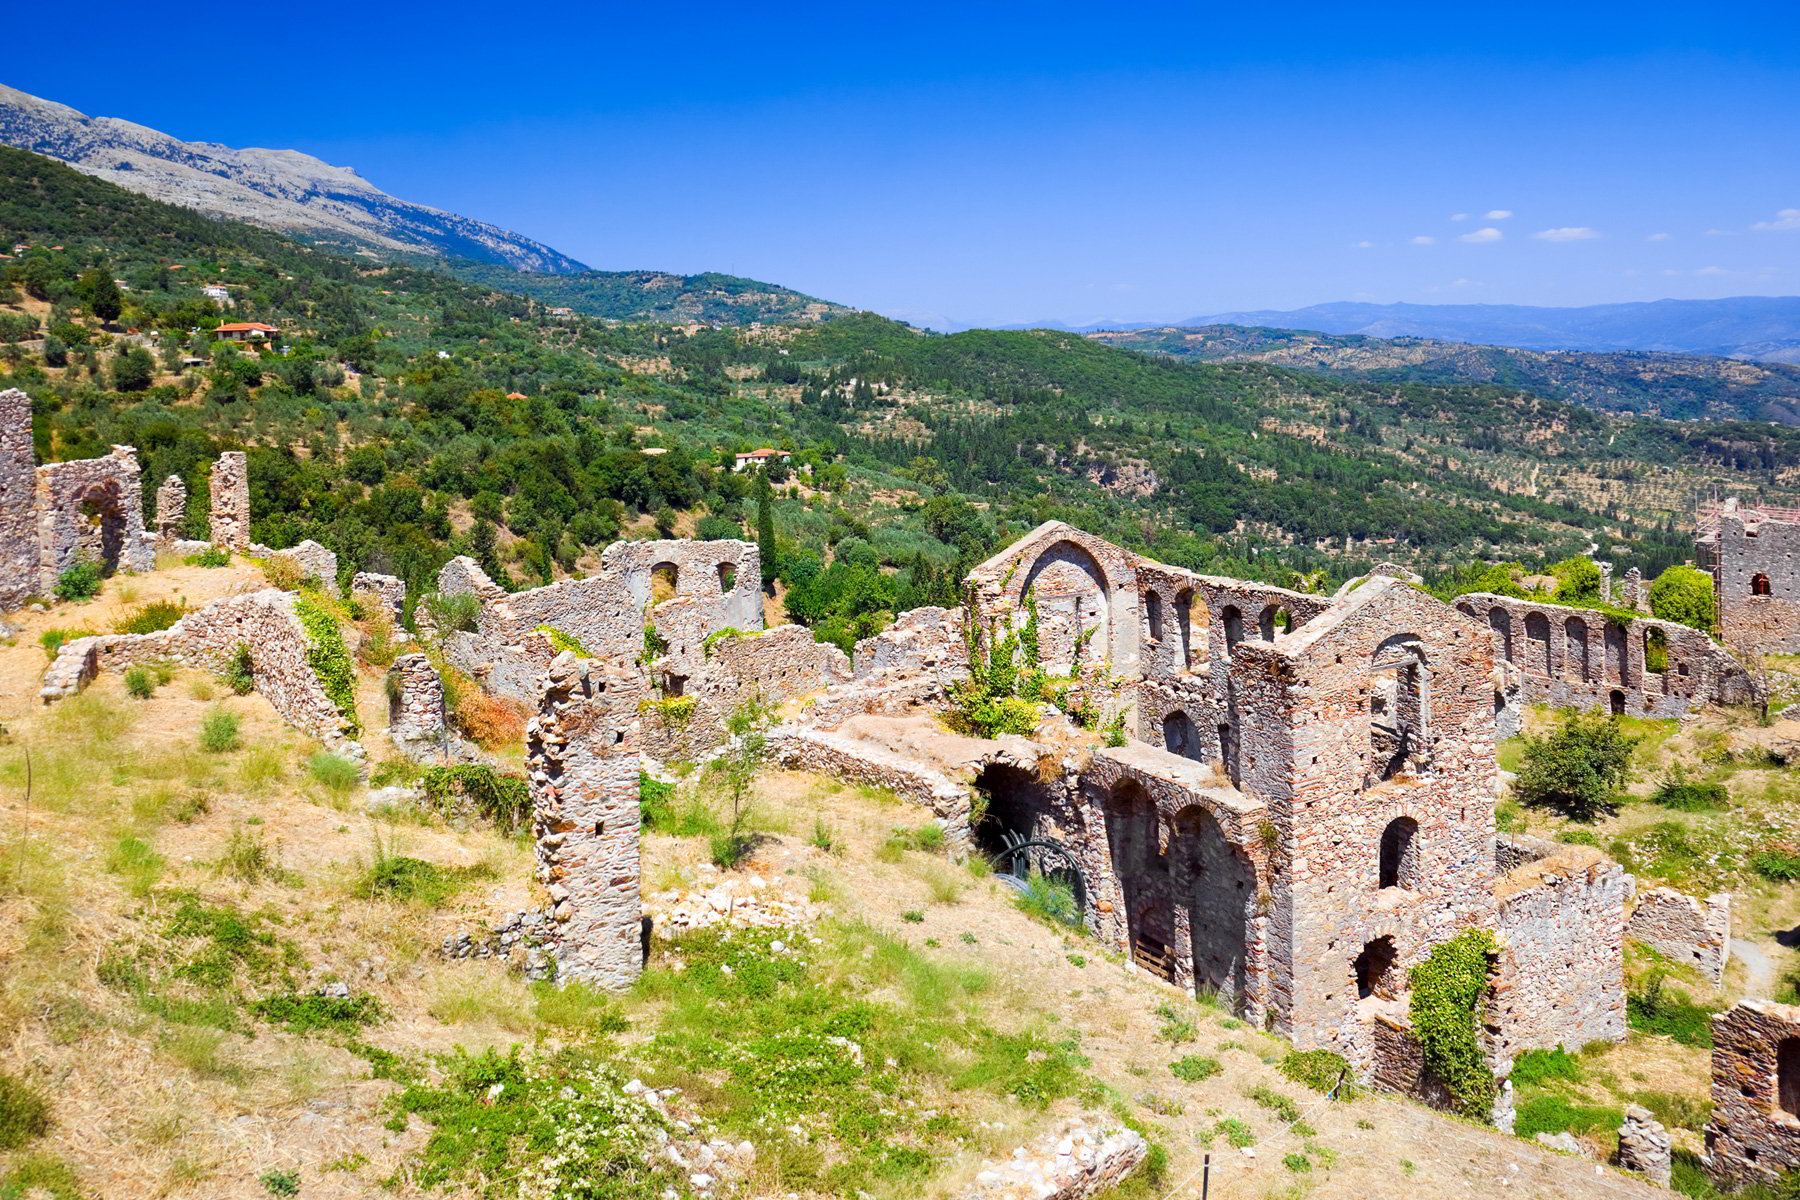 Mystras, Greece - Monterrasol small group tours to Mystras, Greece. Travel agency offers small group car tours to see Mystras in Greece. Order small group tour to Mystras with departure date on request.